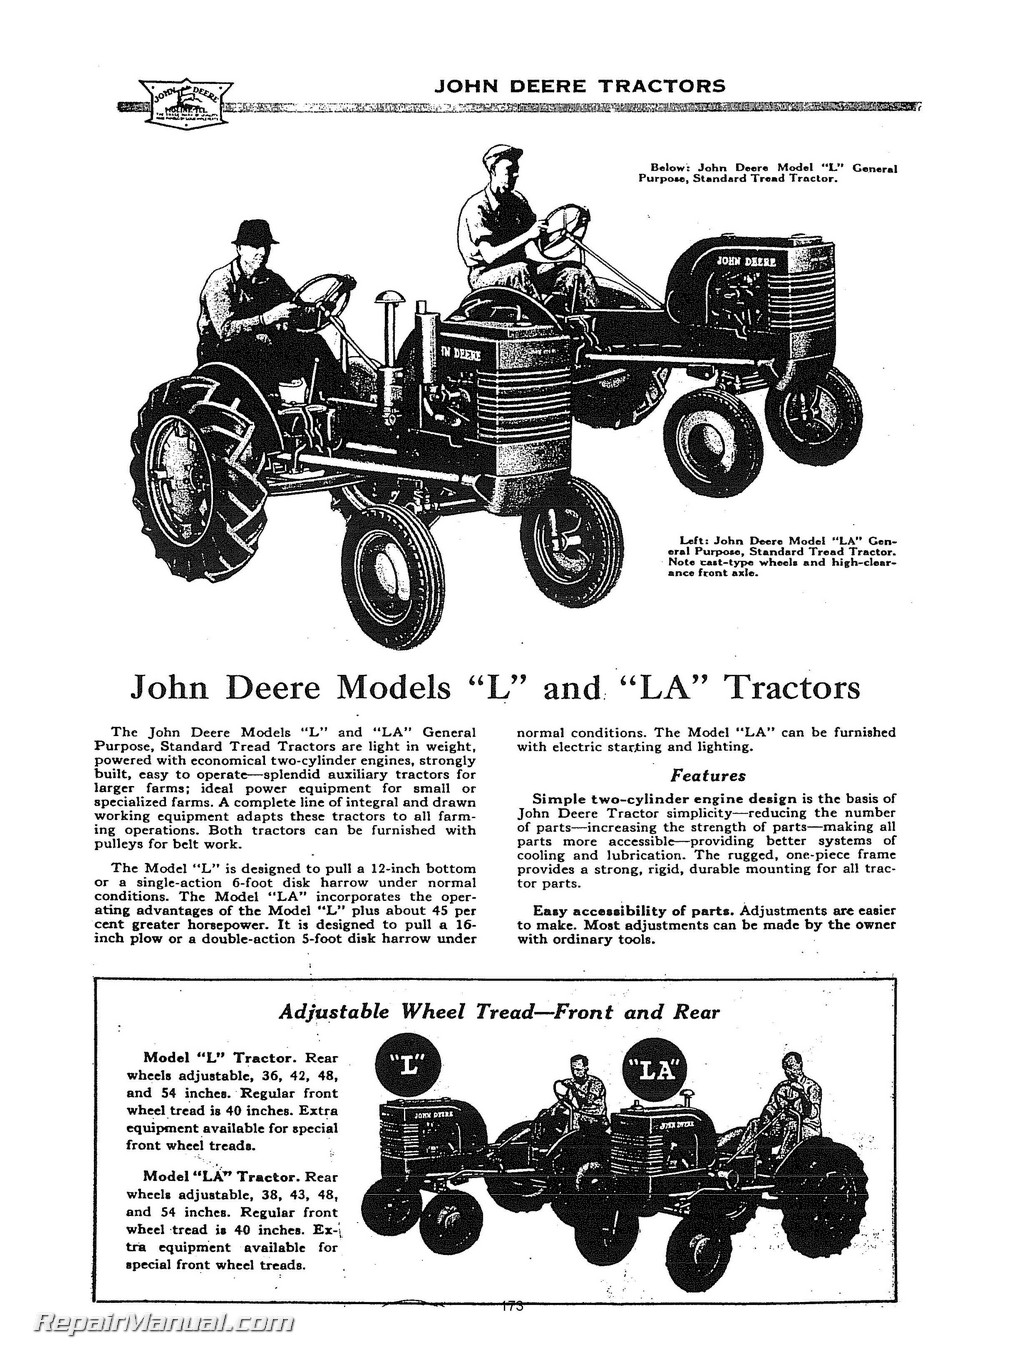 [DIAGRAM_38IU]  John Deere L LA LI Y 62 Tractor Service Manual | John Deere Tractor Engine Diagrams |  | Repair Manuals Online